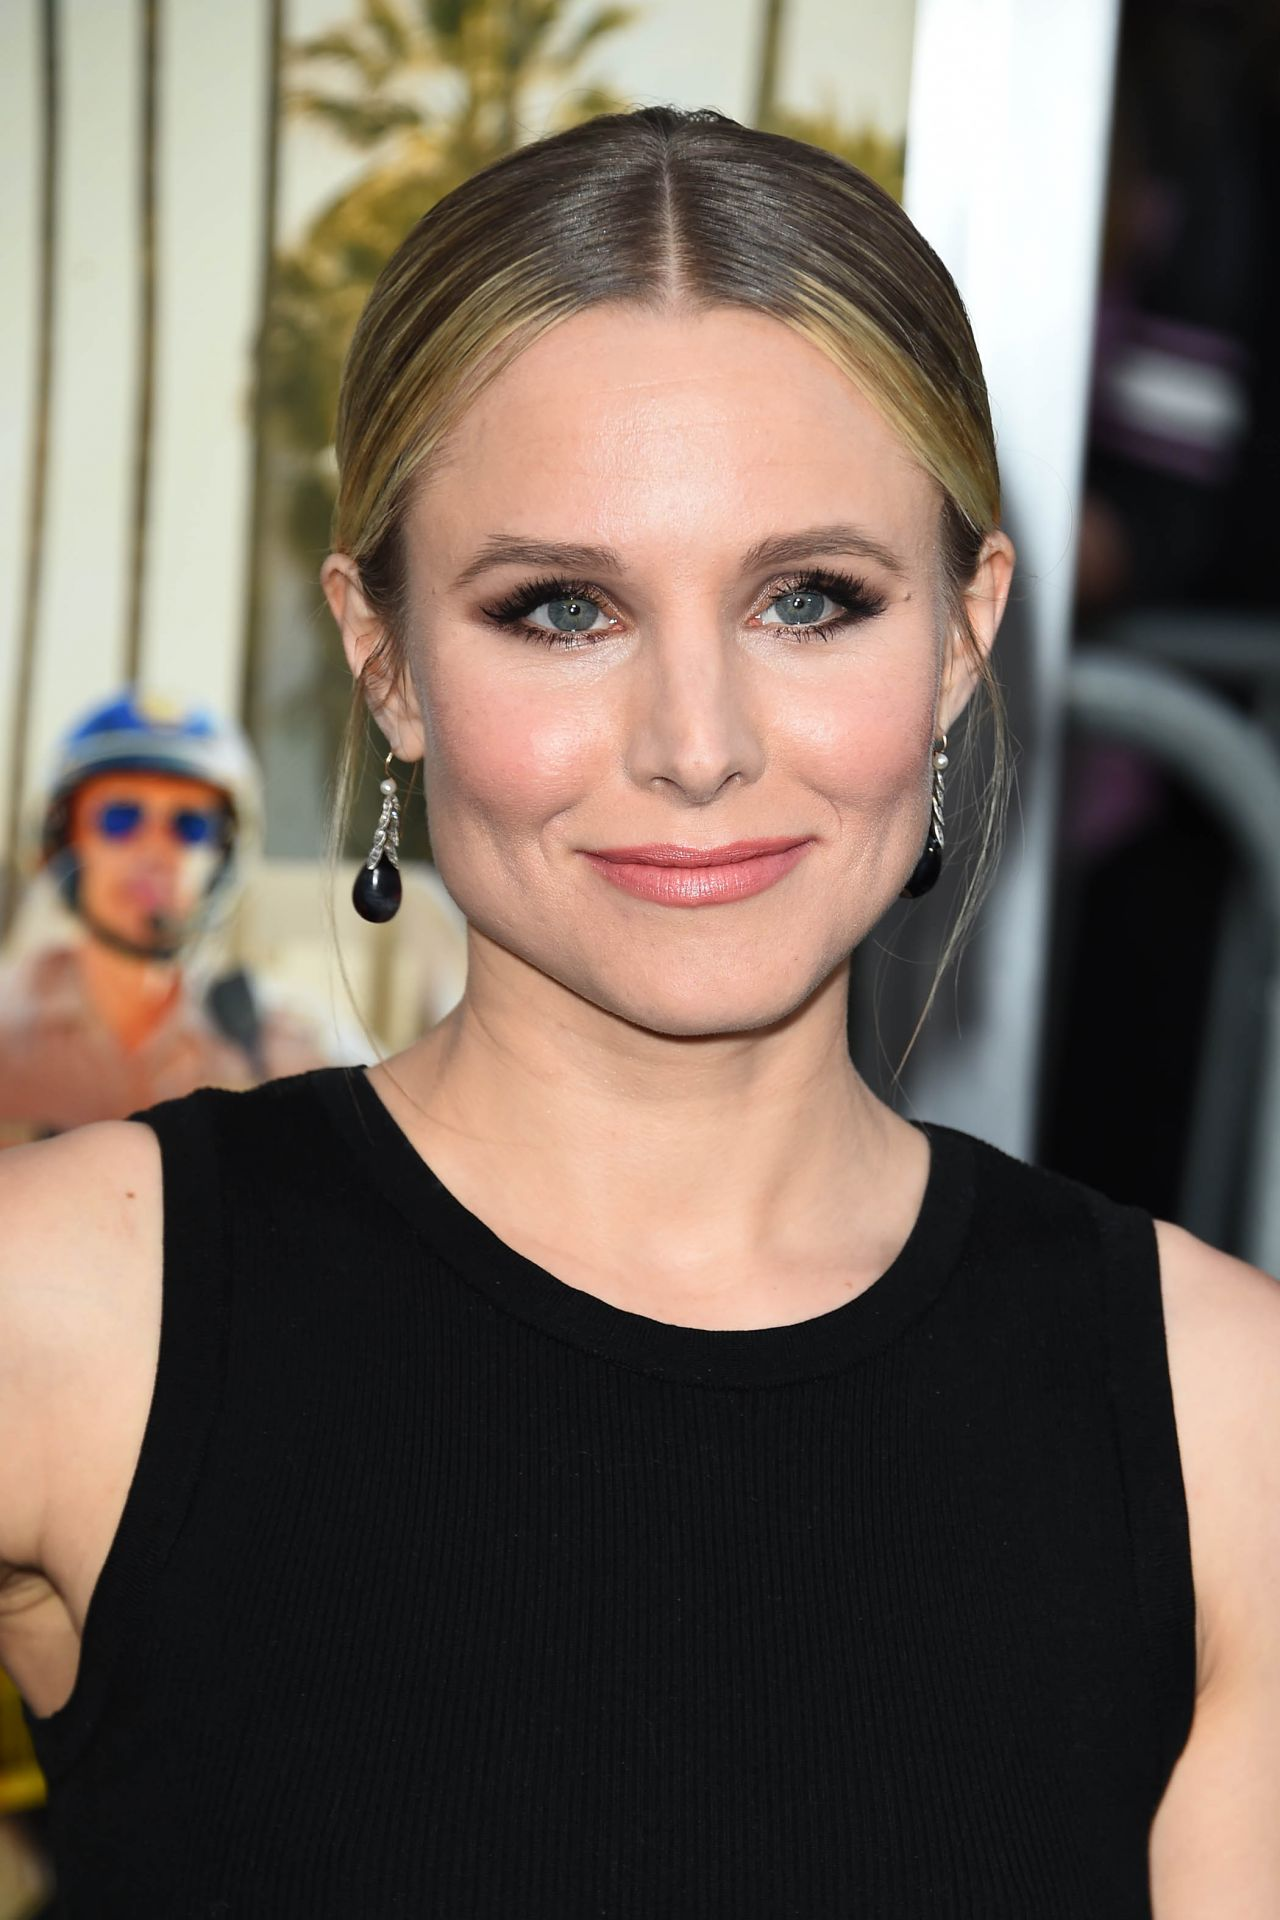 Kristen Bell Quot Chips Quot Movie Premiere In Los Angeles 3 20